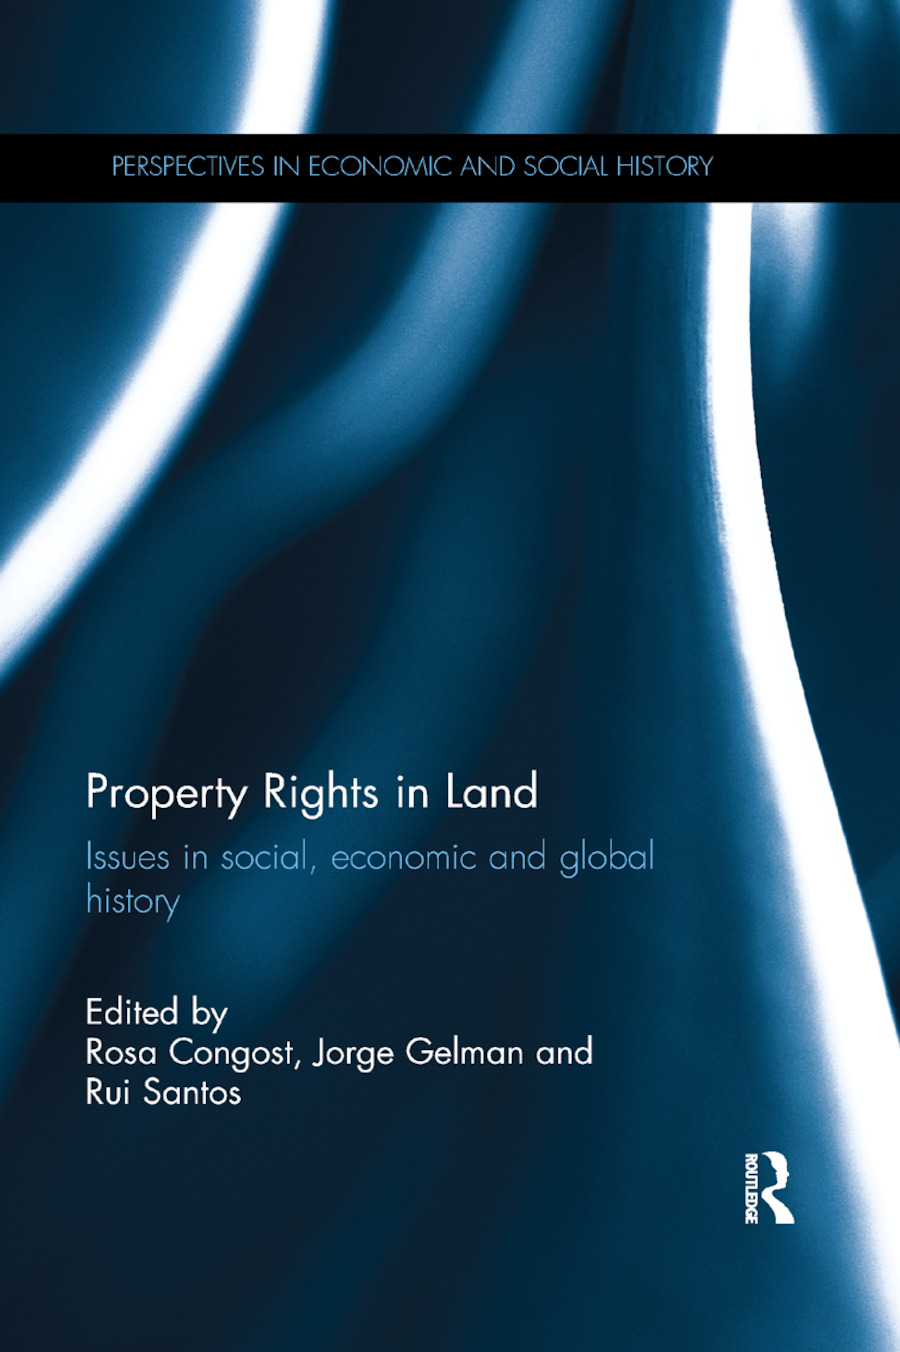 Property Rights in Land: Issues in social, economic and global history book cover